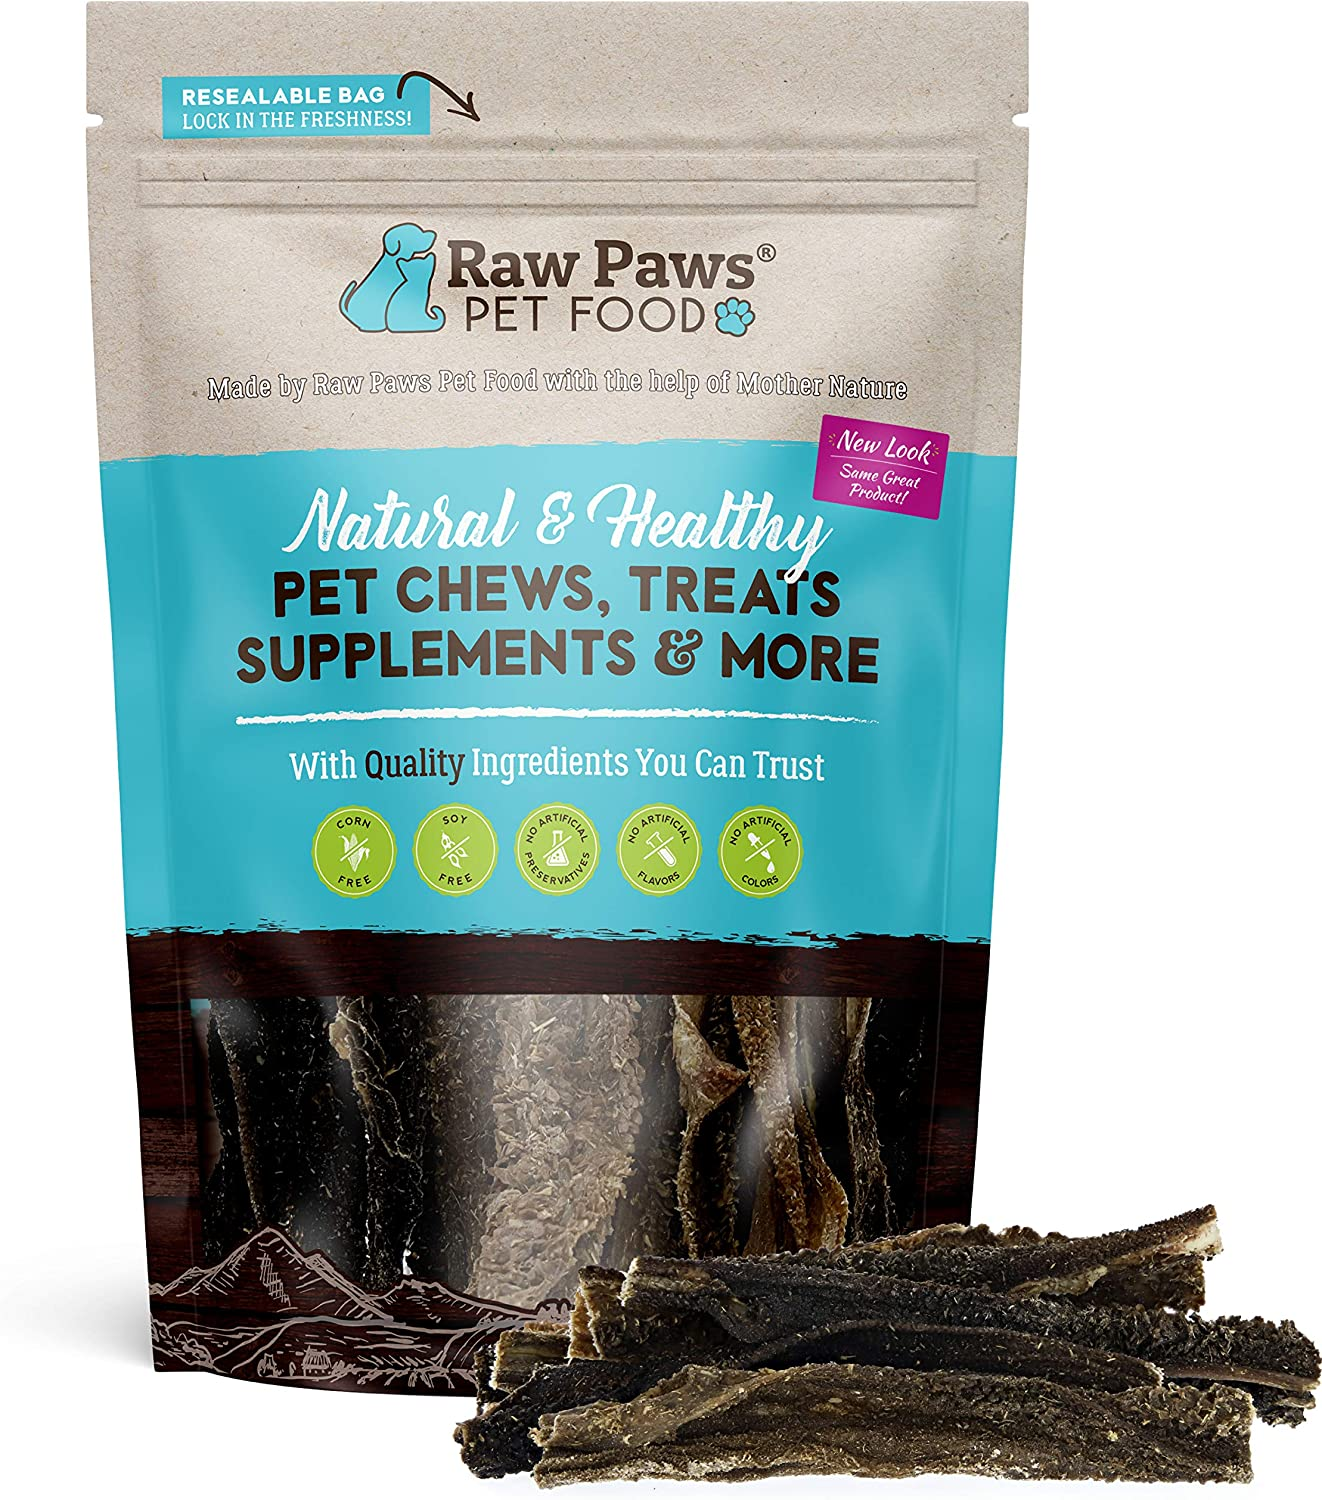 Raw Paws Natural Lamb Tripe Sticks for Dogs - Packed in USA - Green Tripe for Dogs from Free-Range, Grass Fed Lamb with No Added Antibiotics or Hormones - Crunchy, Dehydrated Dog Tripe Treats